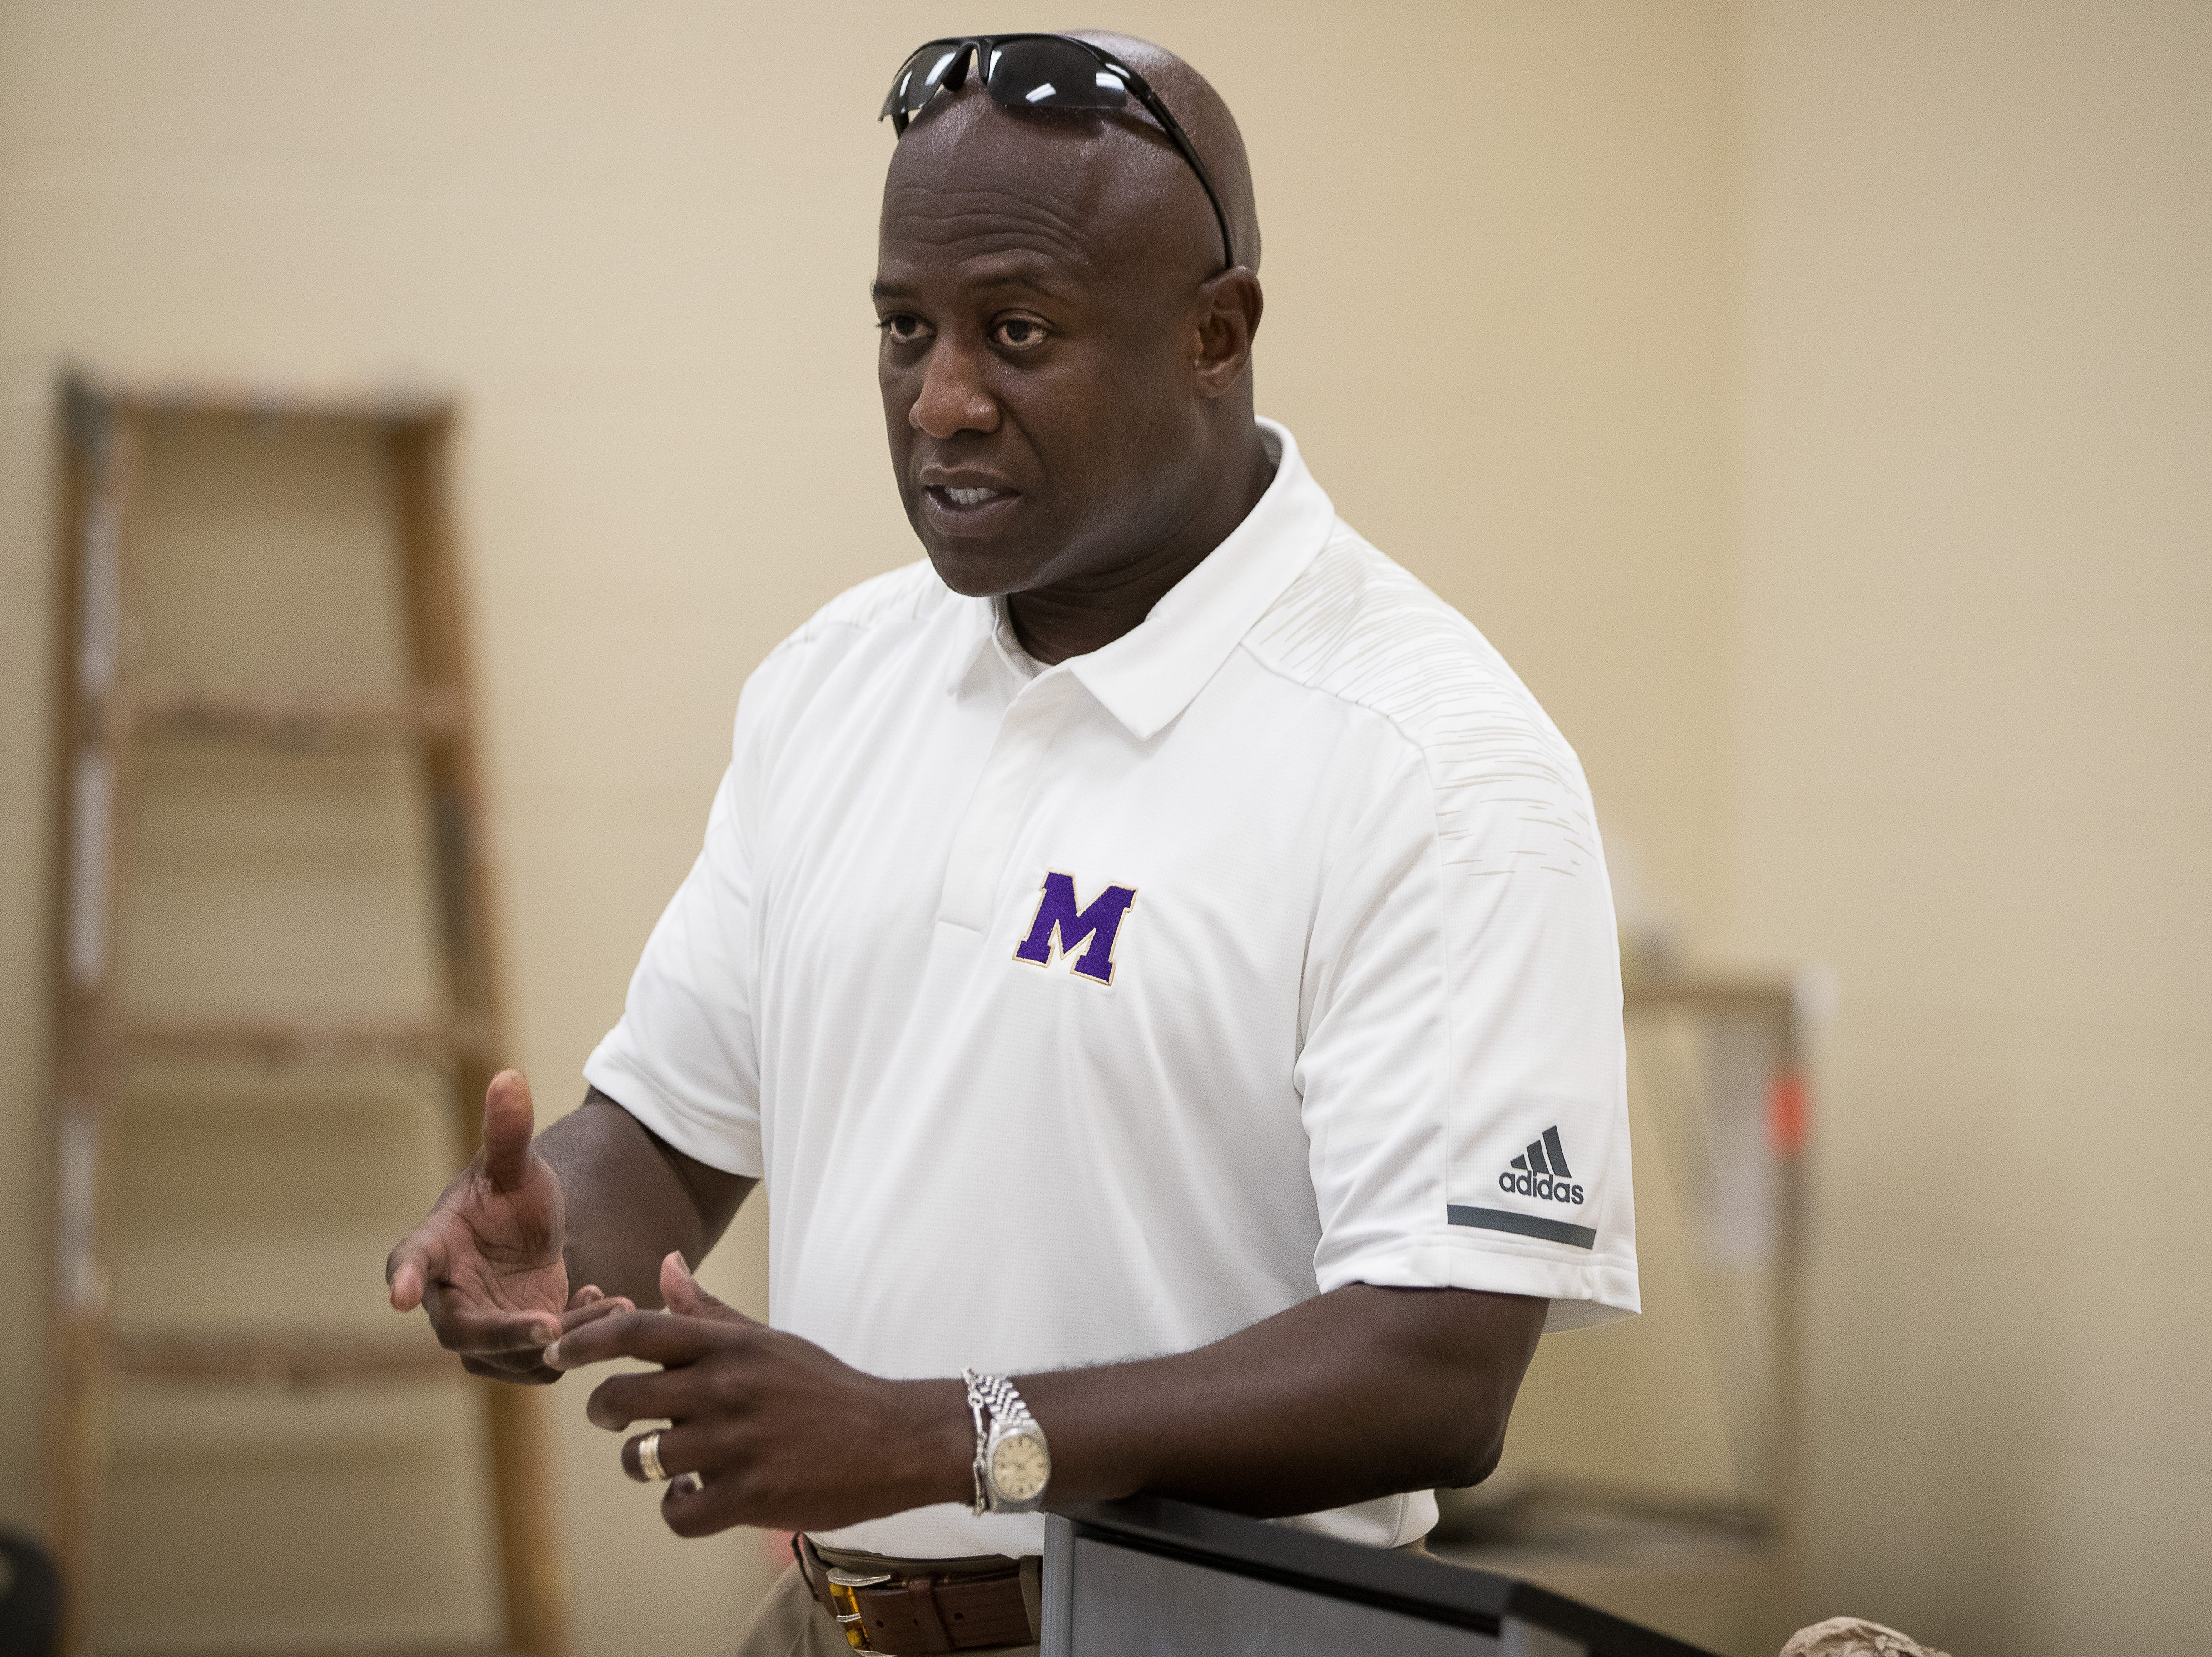 Miller High school's new principal Bruce Wilson talks to the male coaches at new school before the start of the new school year on Thursday, Aug. 9, 2018.